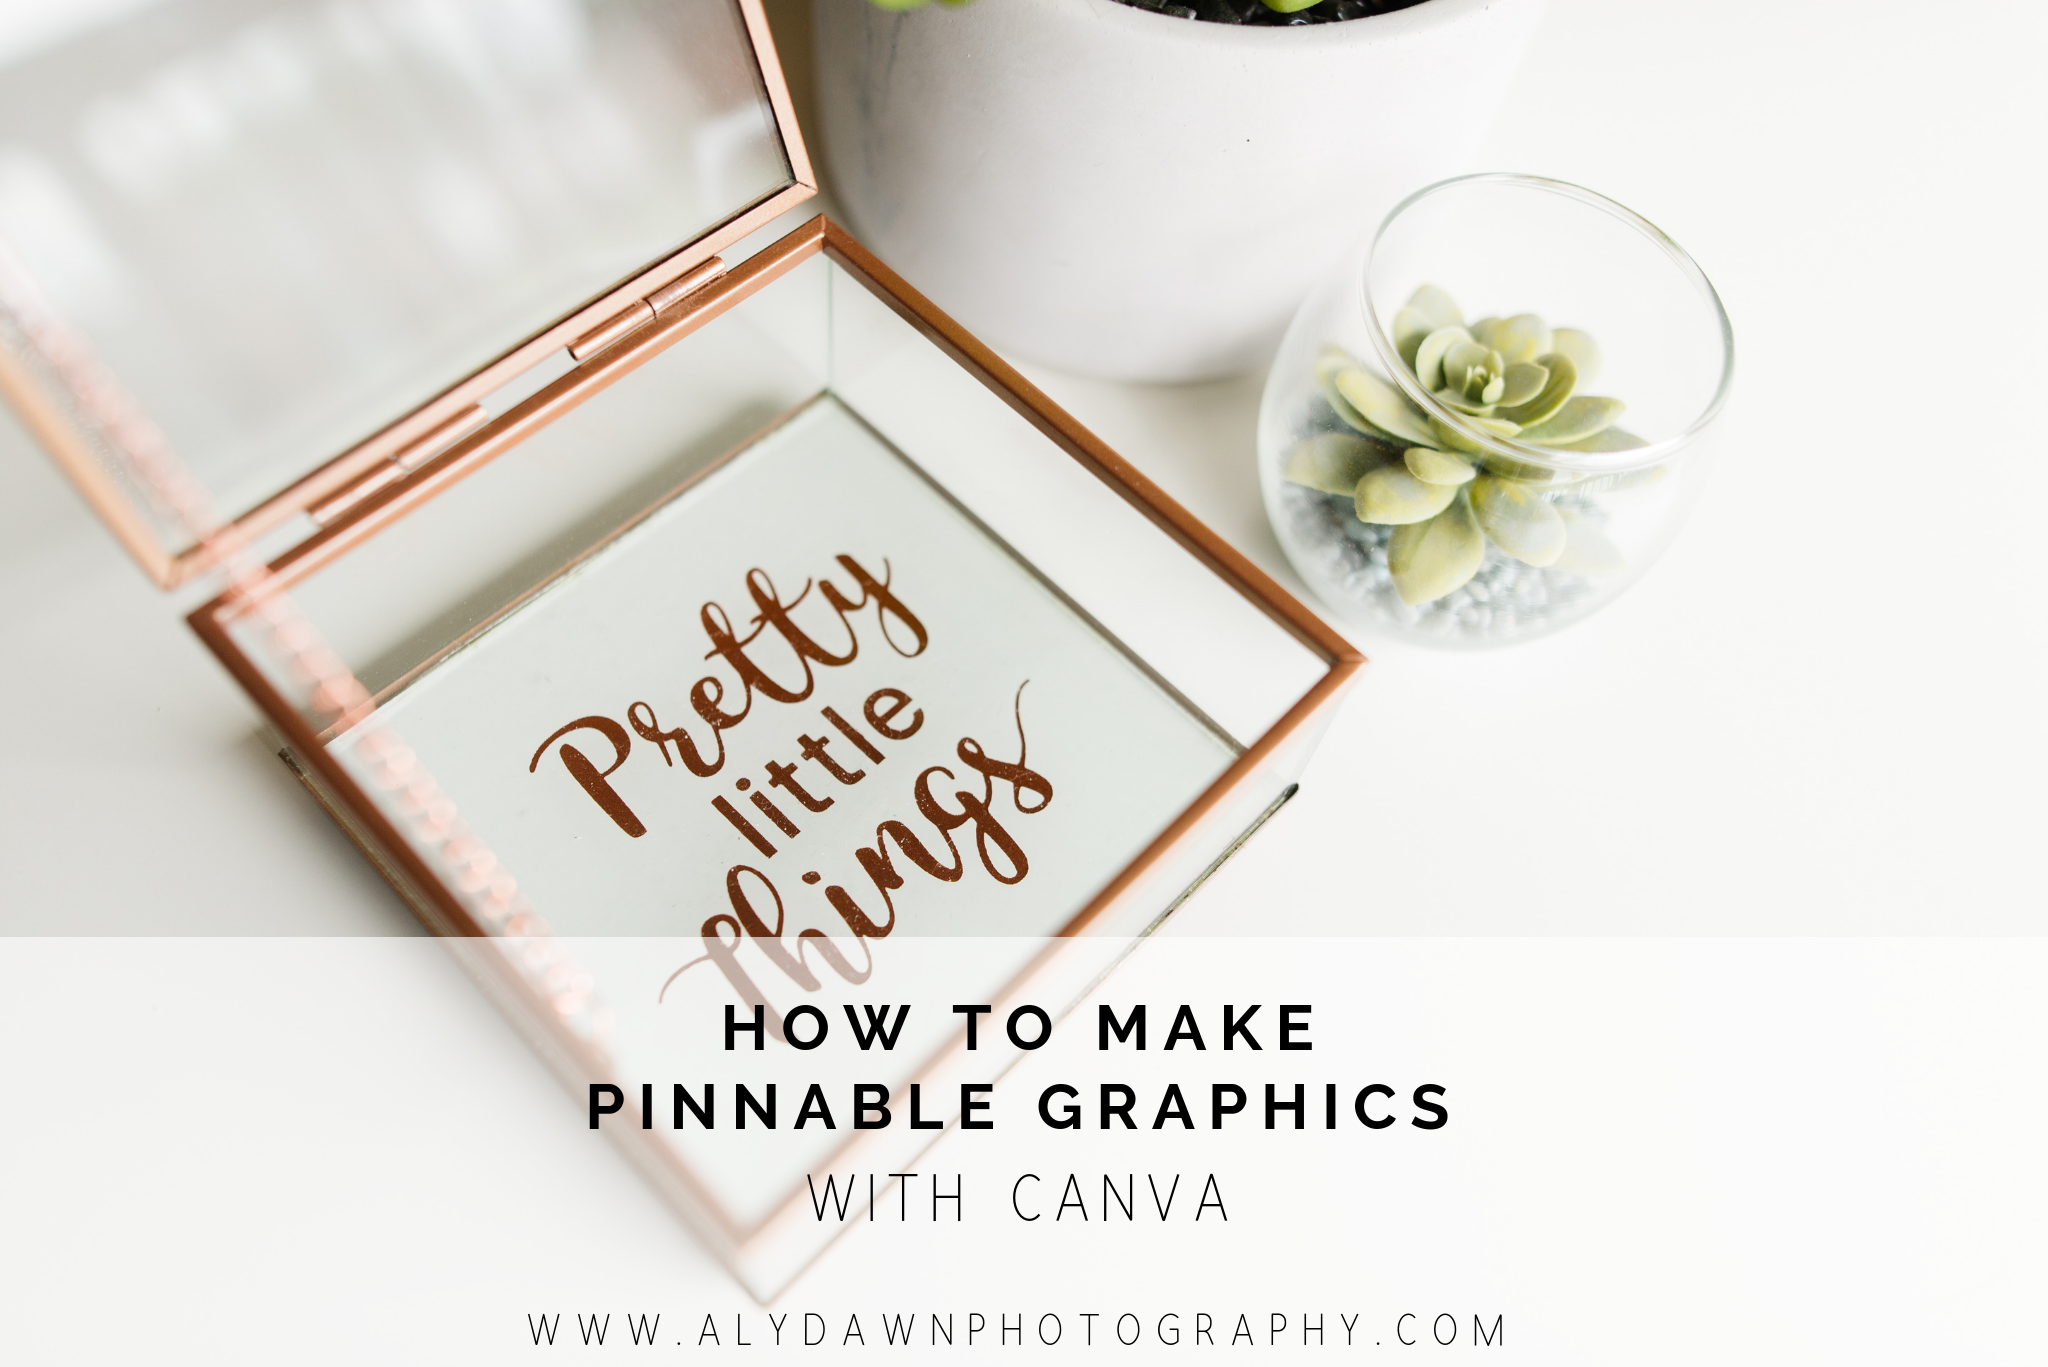 How to Make Pinnable Graphics with Canva